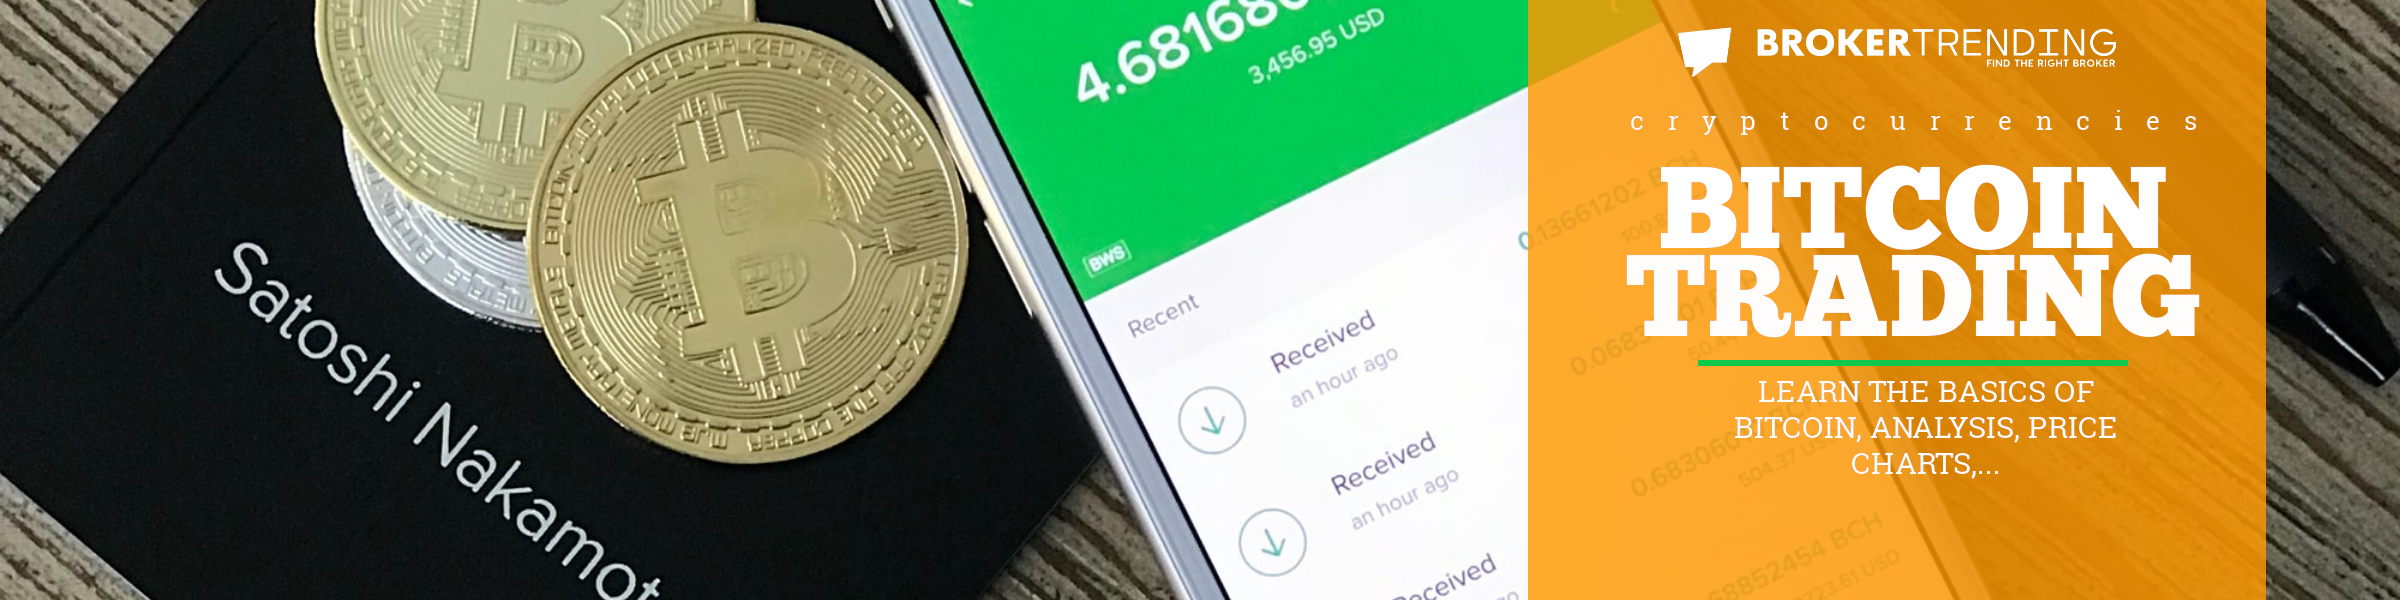 Bitcoin Trading Guide by BrokerTrending